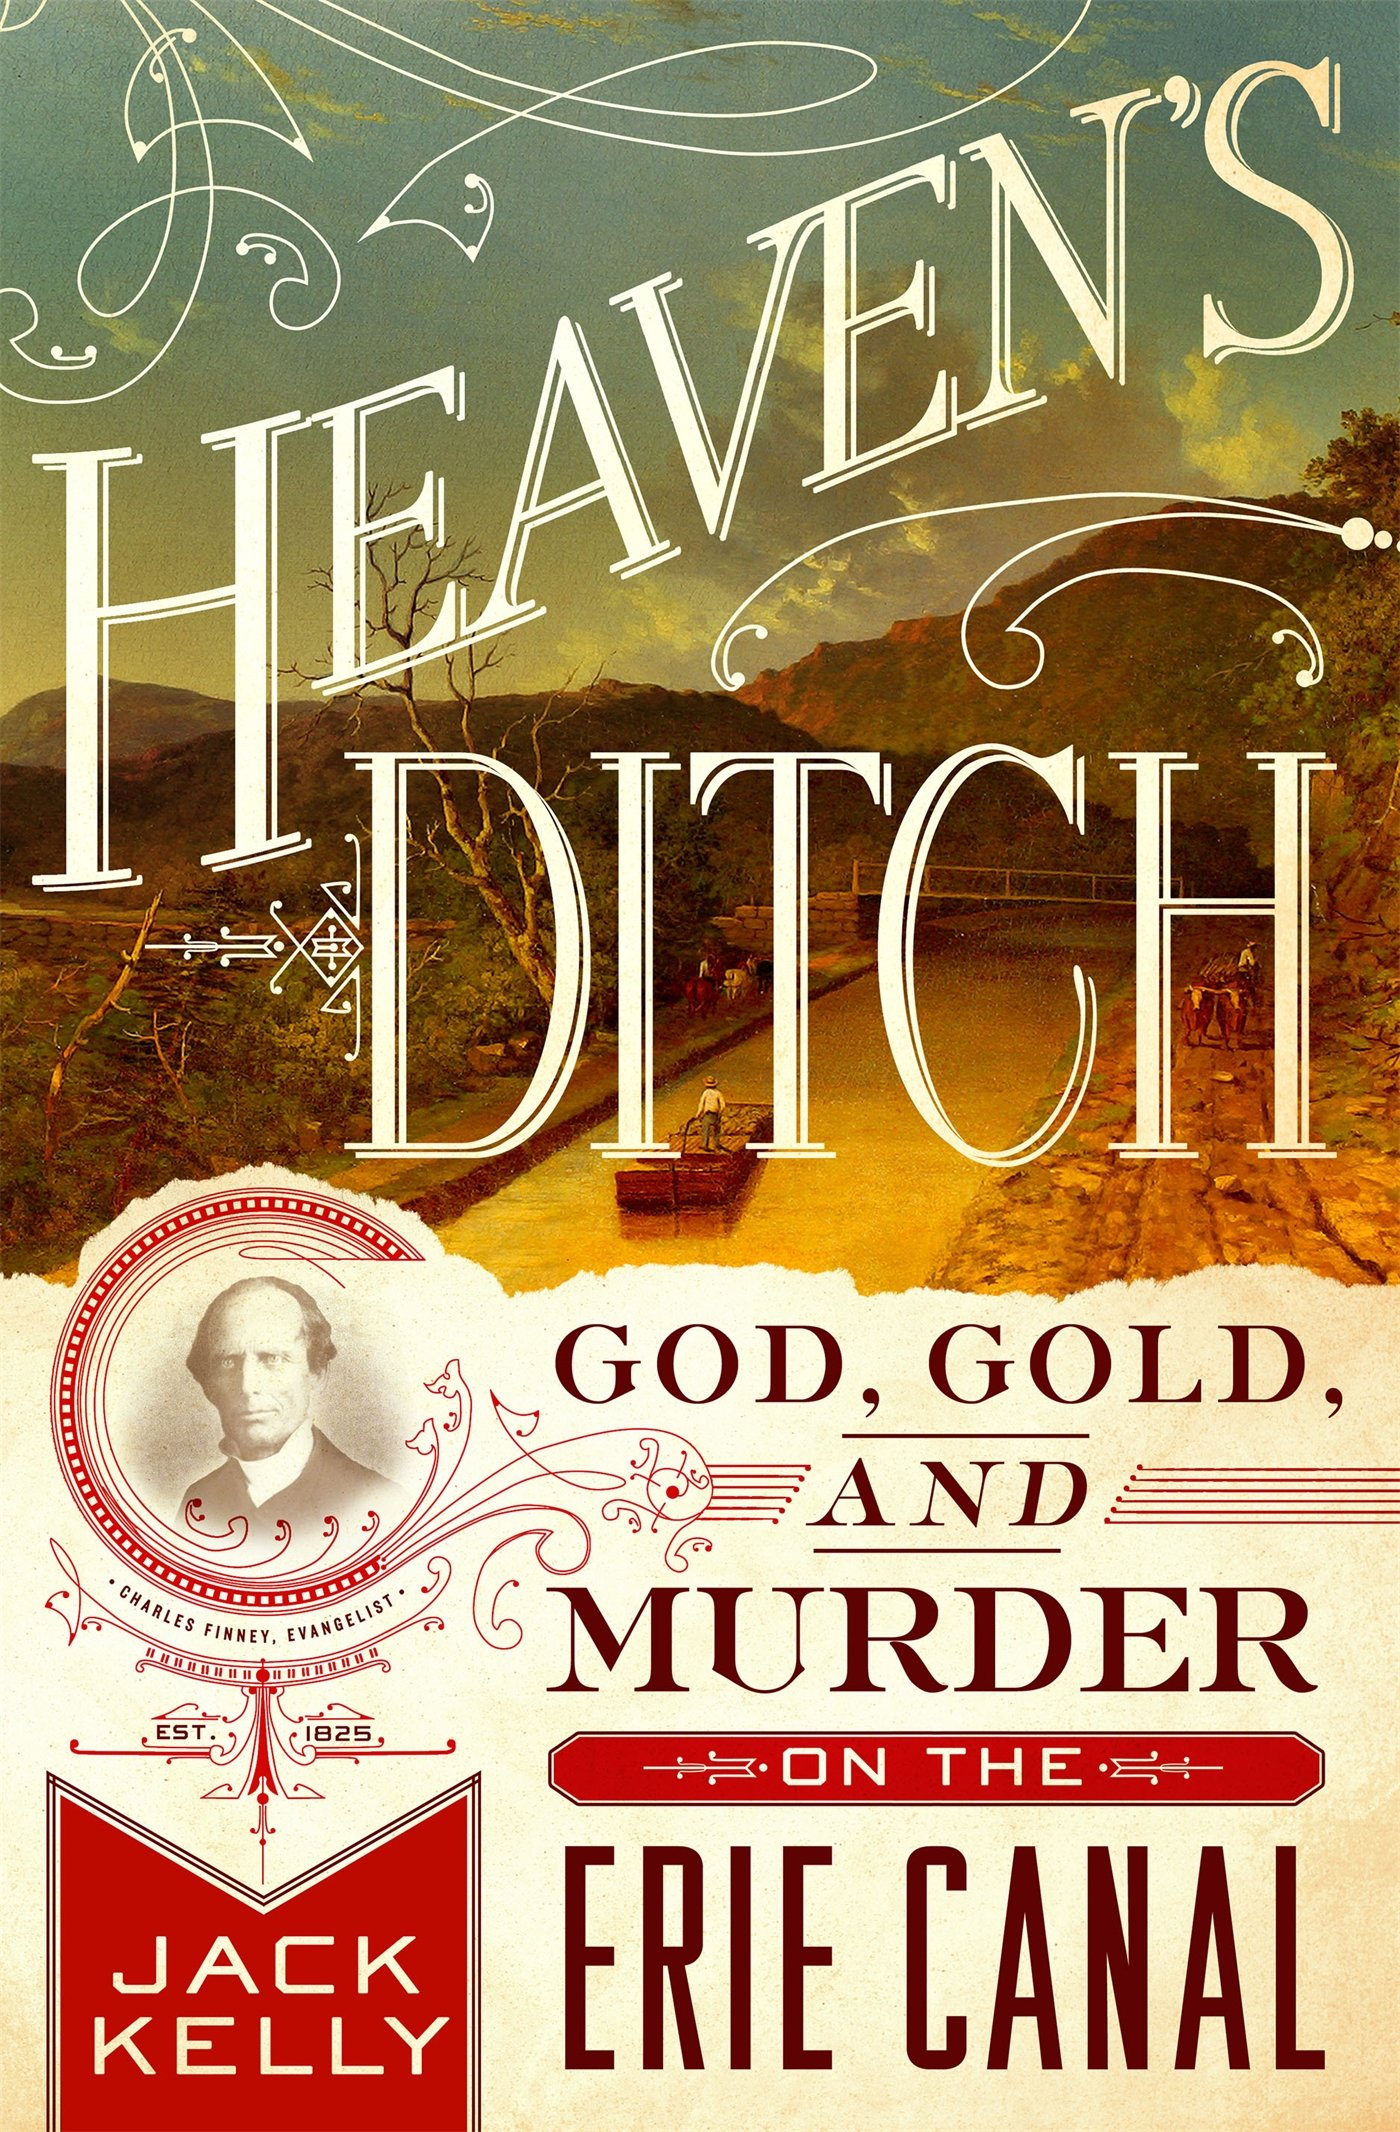 Heavens Ditch Gold Murder Canal product image